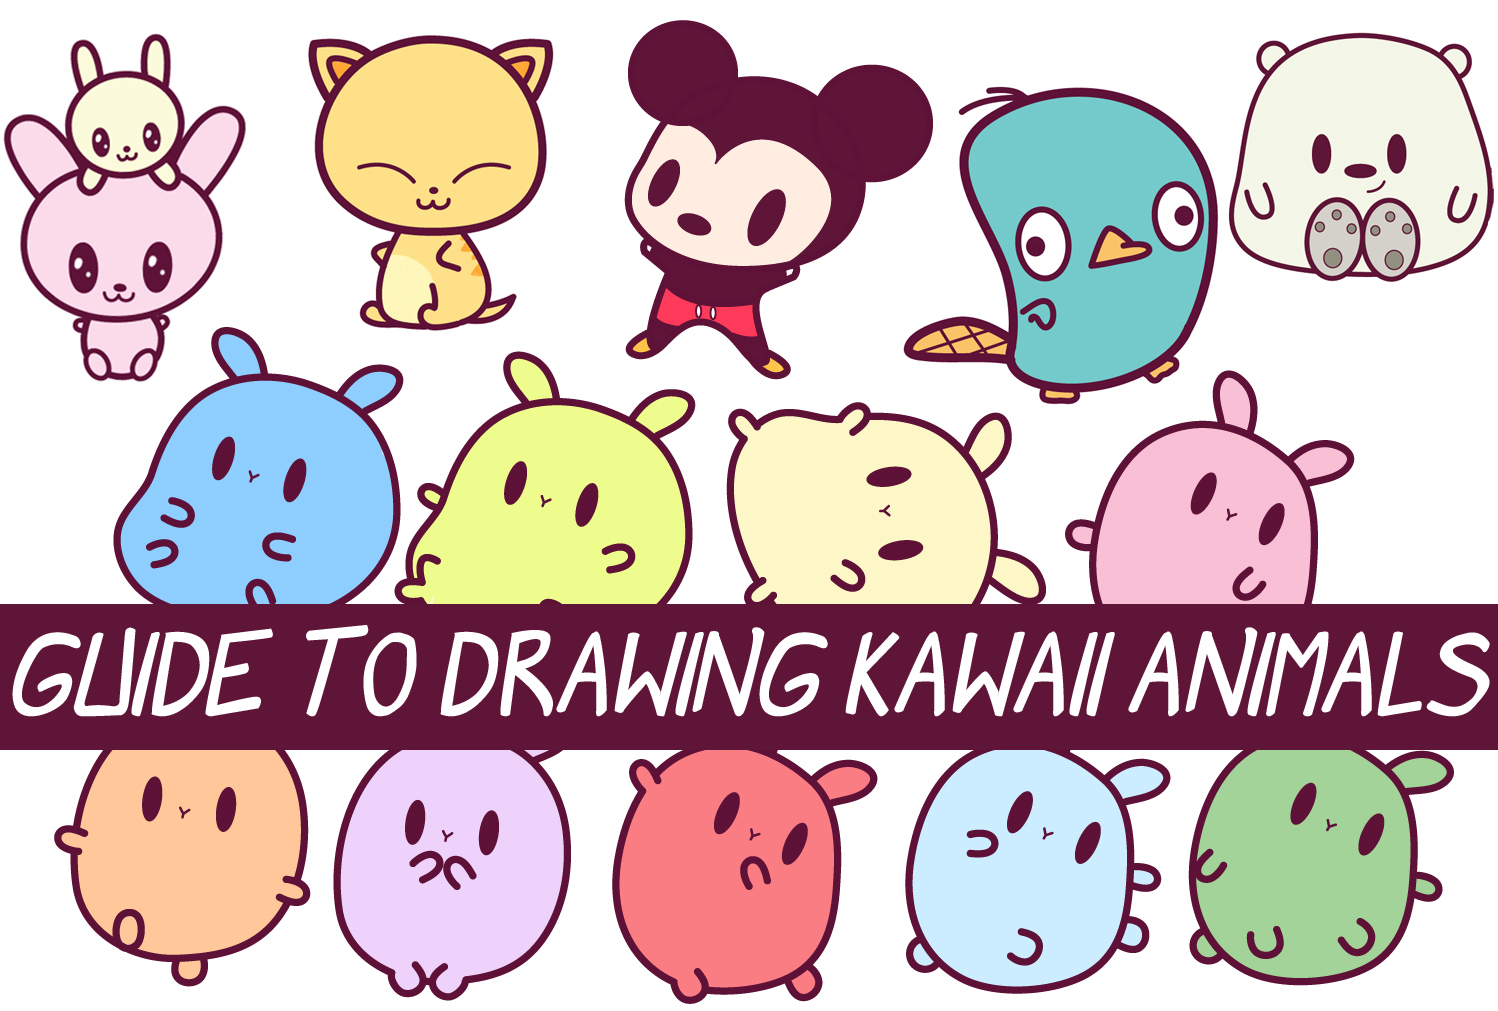 Easy Guide to Drawing Kawaii Characters : Part 2 : How to Draw Kawaii Animals & Critters, Expressions, Faces, Body Poses